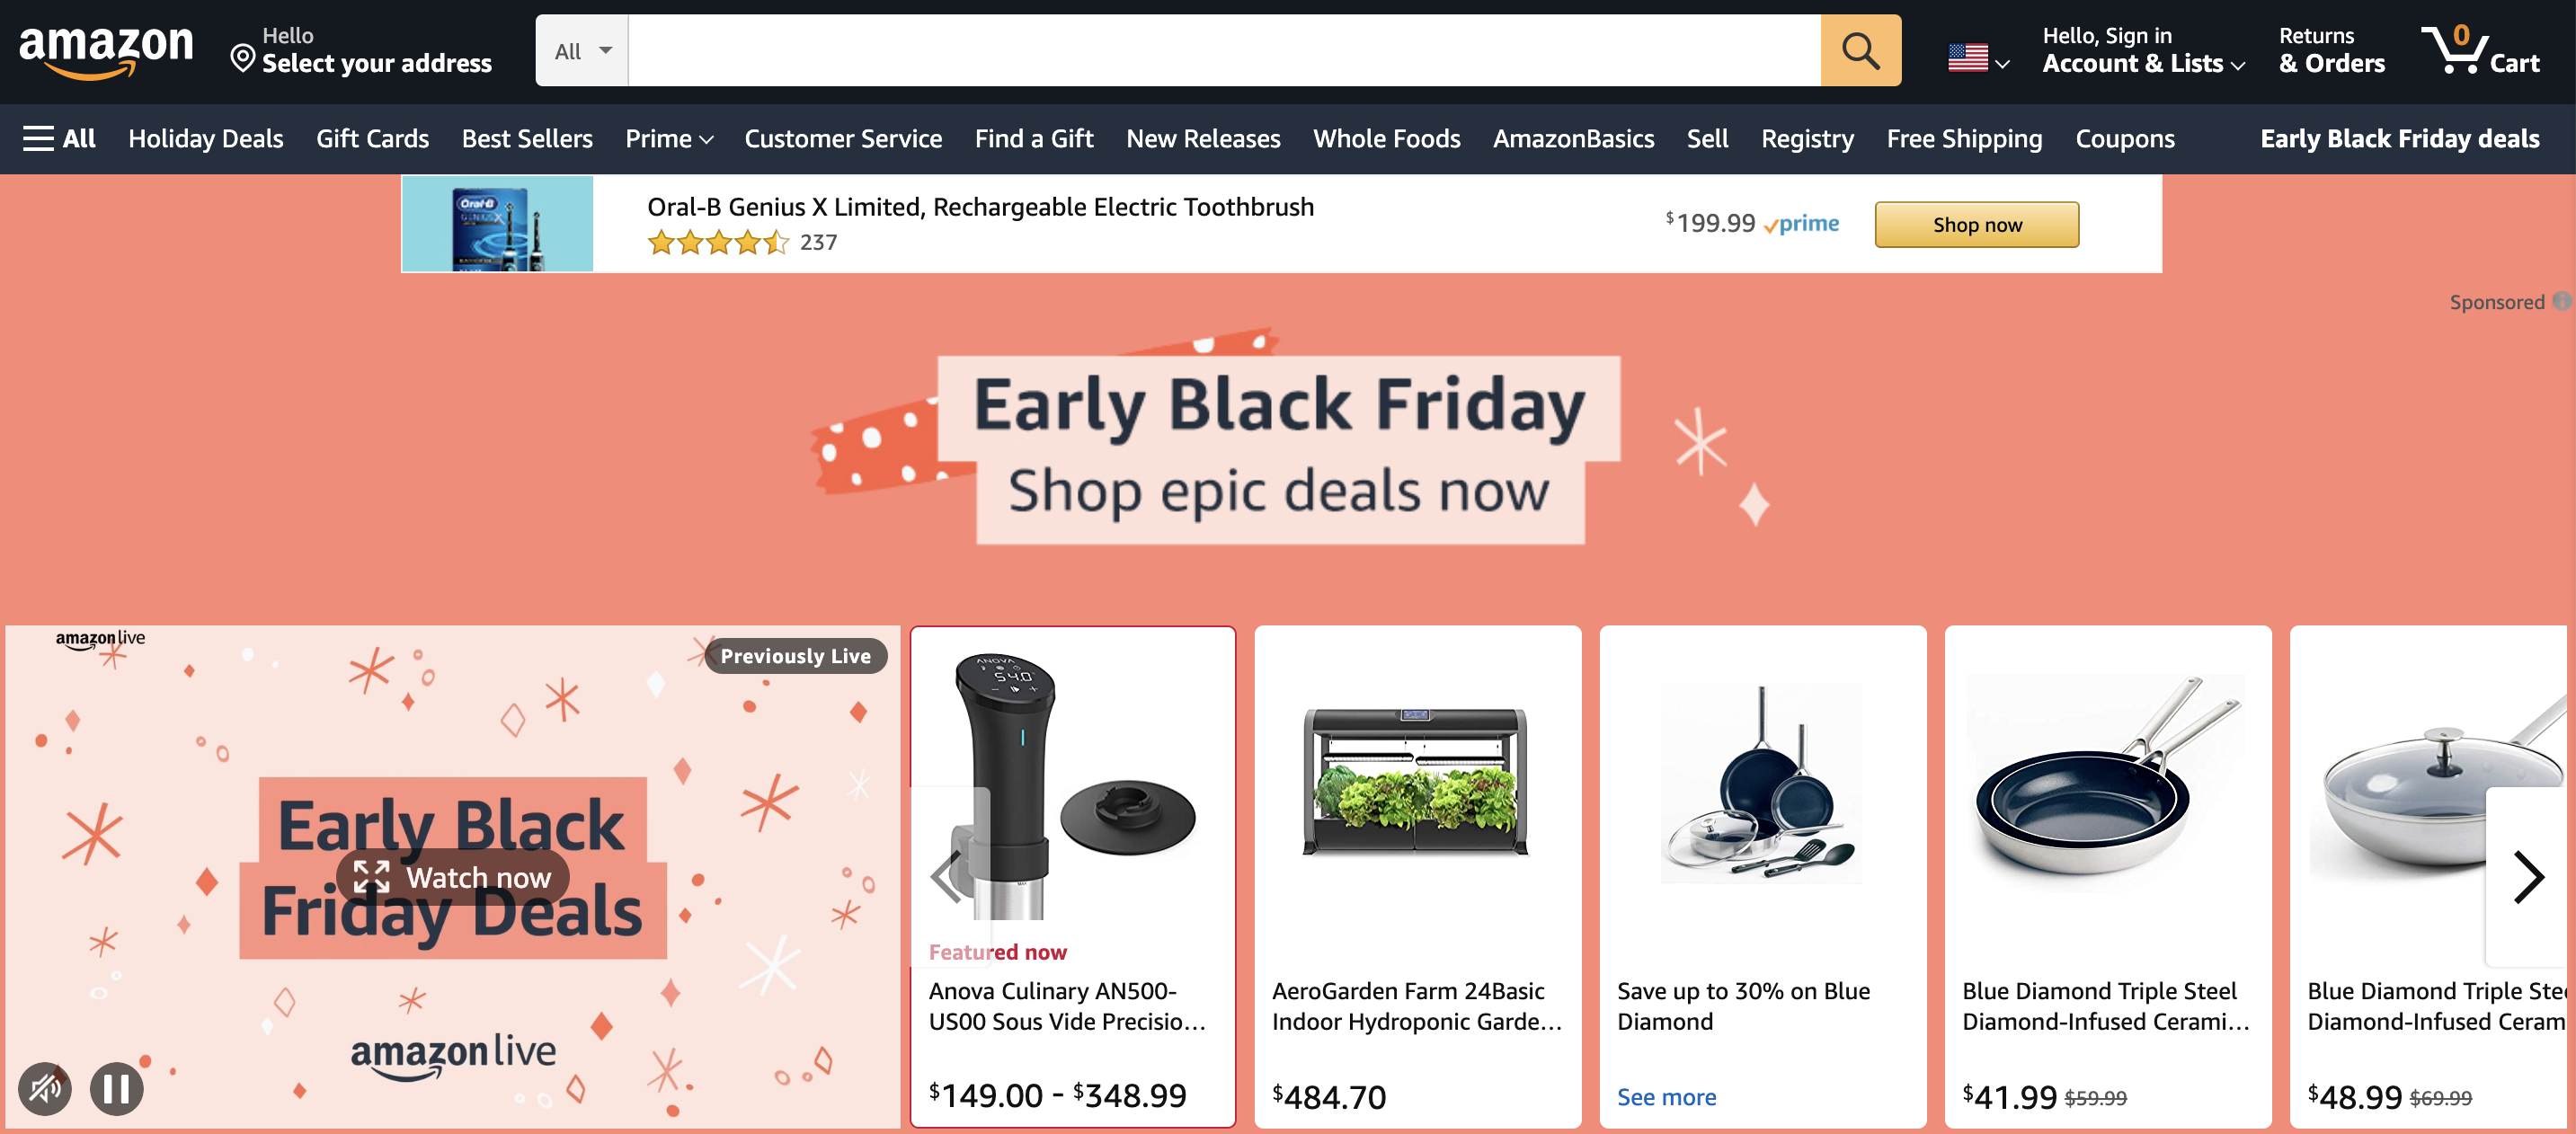 Amazon Holiday Deals and Ecommerce Strategy | Pattern